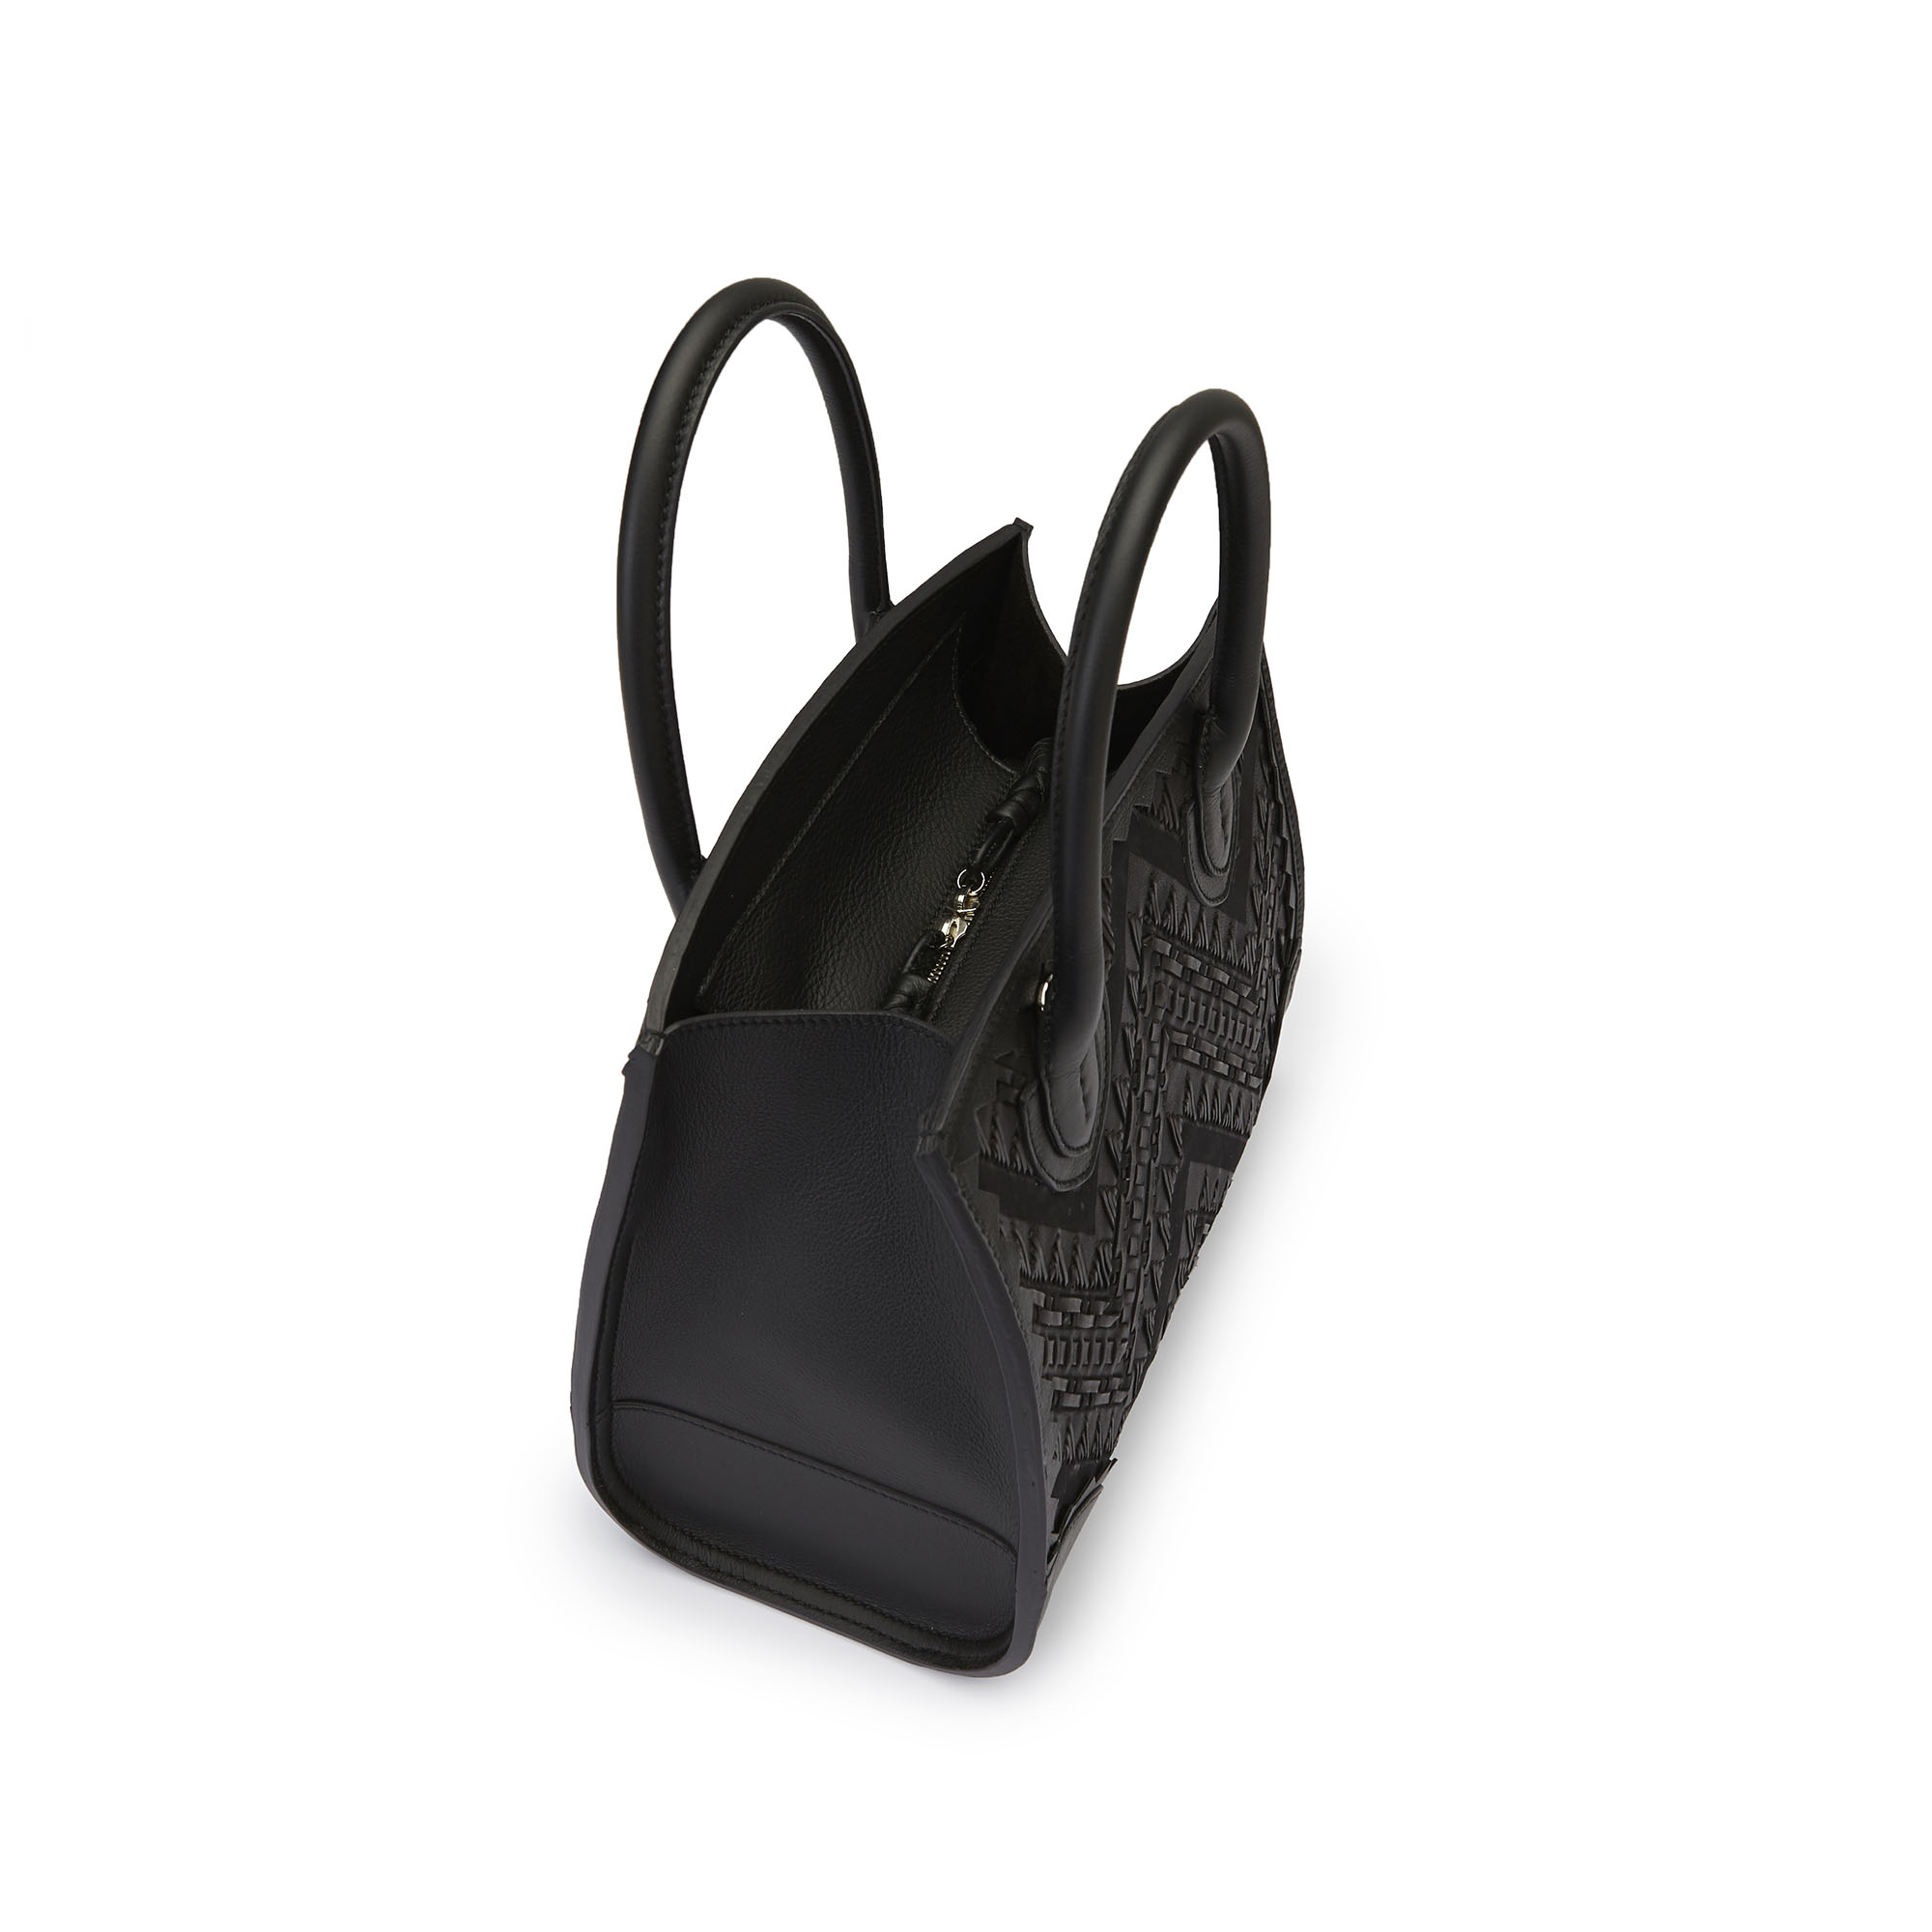 The black stranded leather with soft calf Darcy bag by Bertoni 1949 04